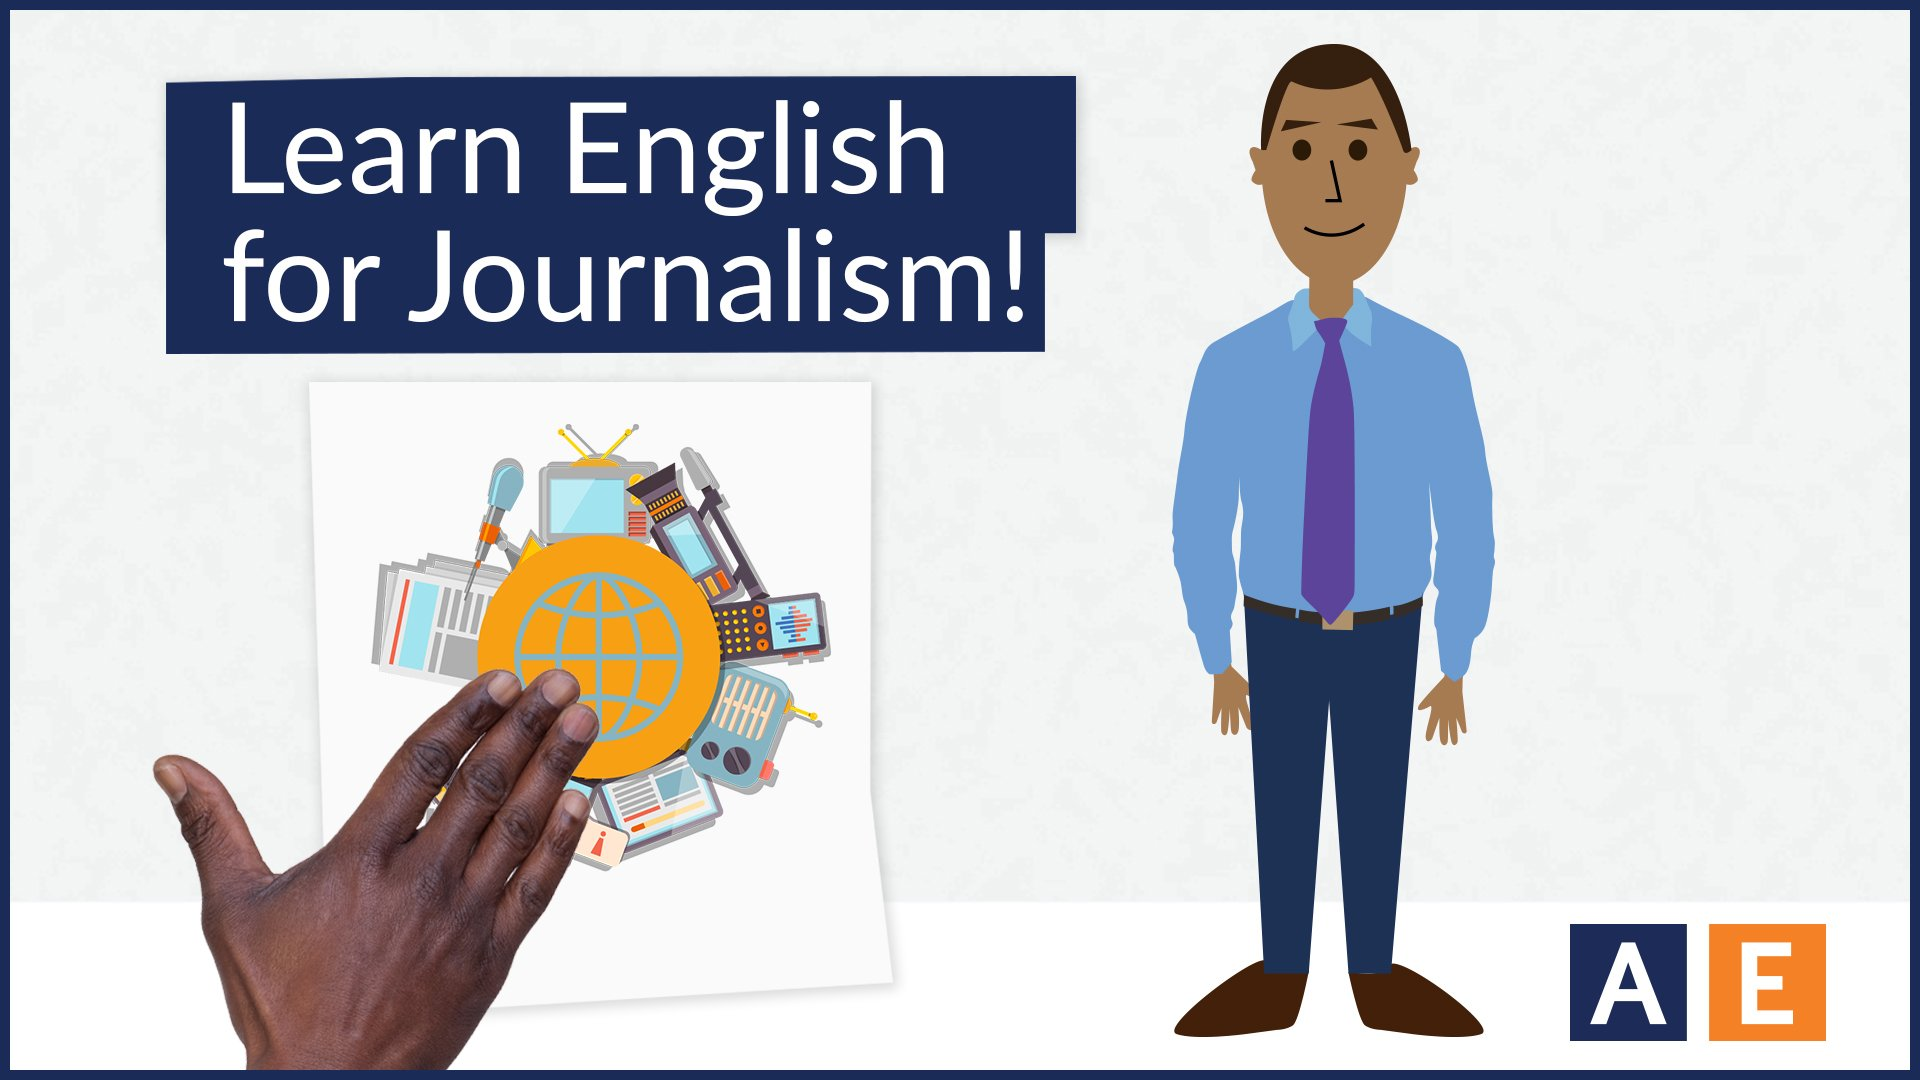 Learn English for Journalism